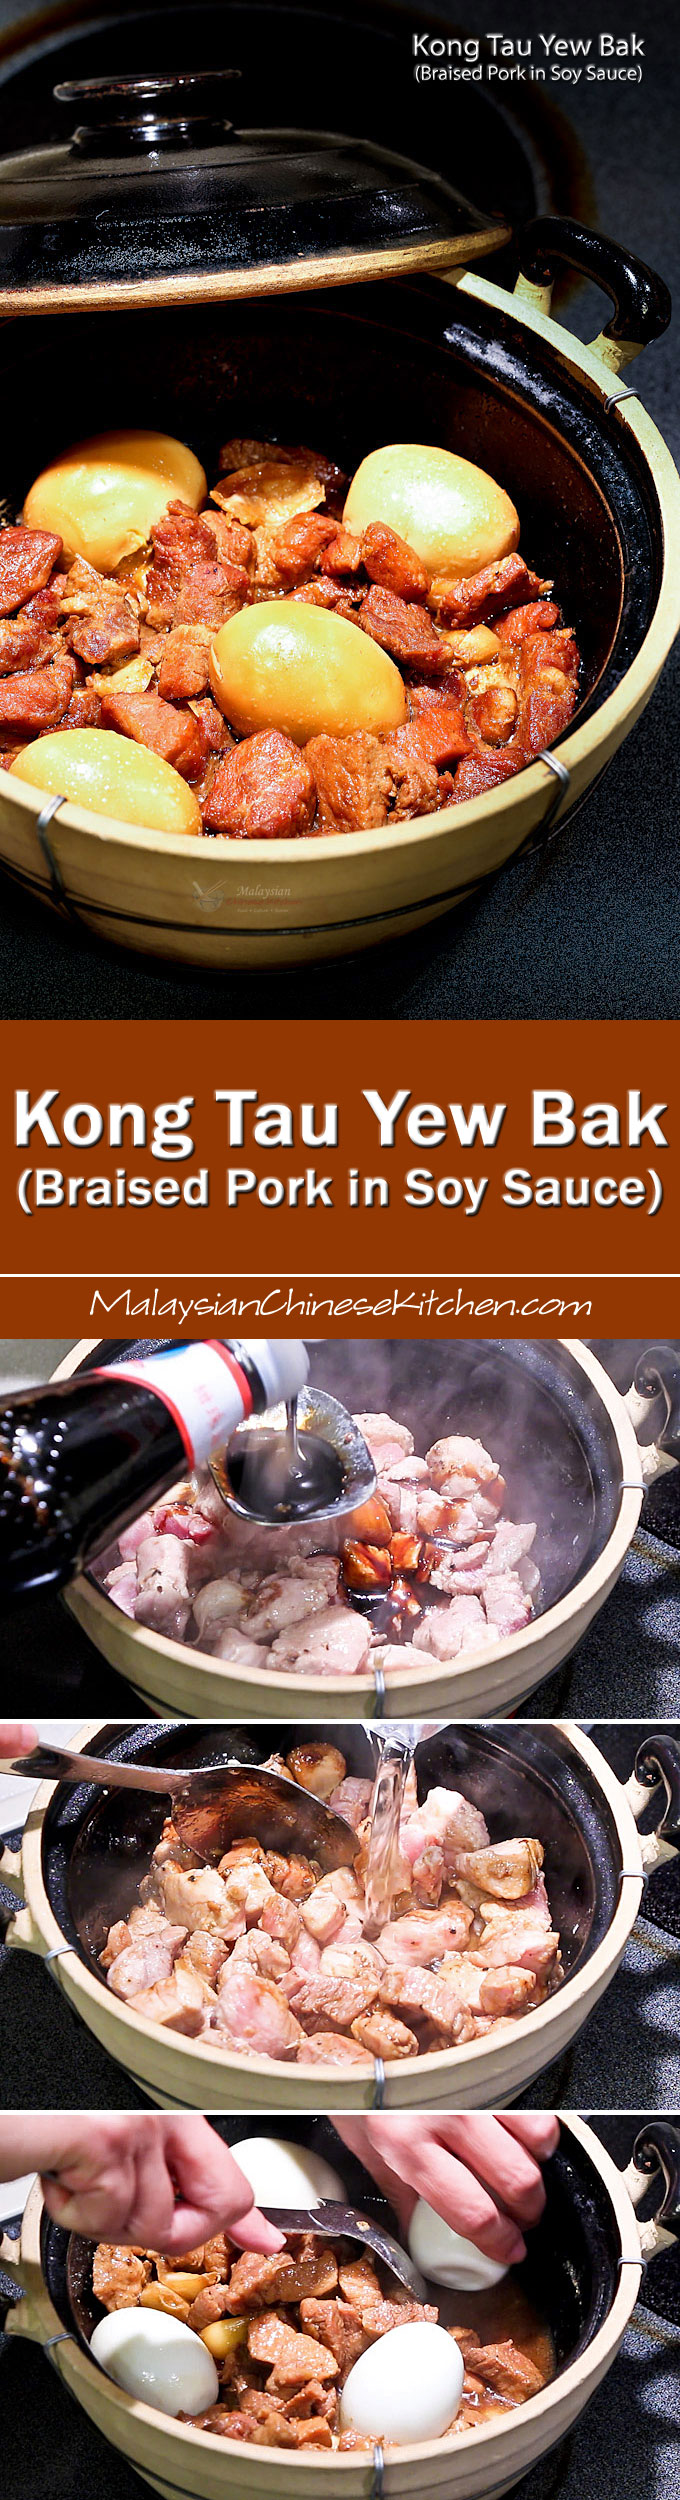 Kong Tau Yew Bak (Braised Pork in Soy Sauce) is a well loved, very flavorful Hokkien (Fujianese) comfort food dish. Usually comes with hard boiled eggs. | MalaysianChineseKitchen.com